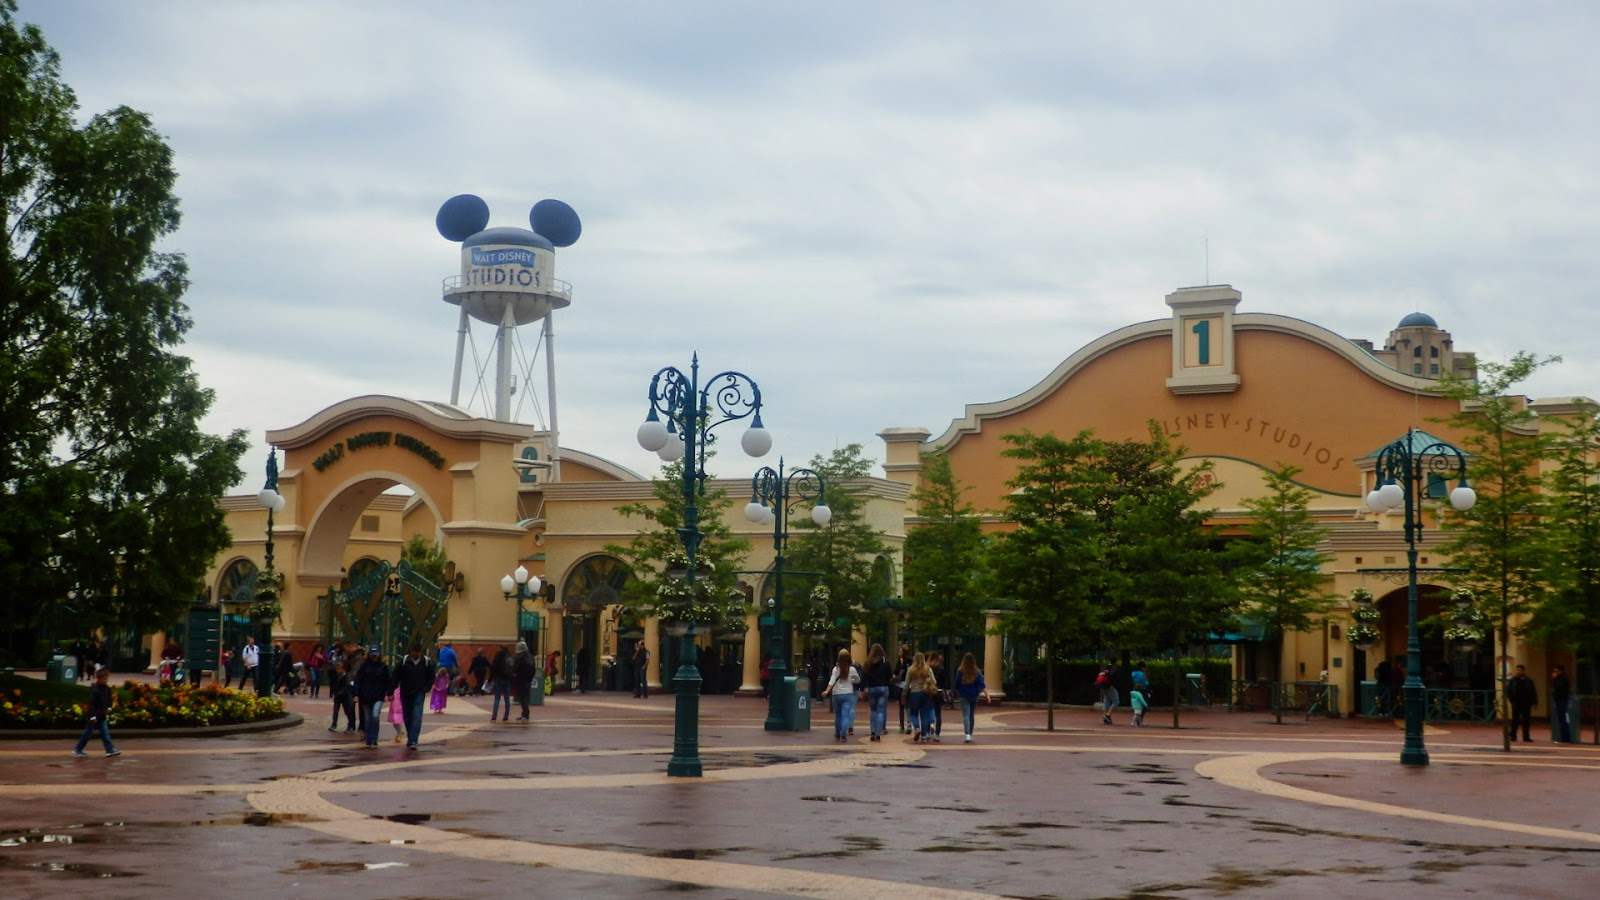 Walt Disney Studios in Disneyland Paris